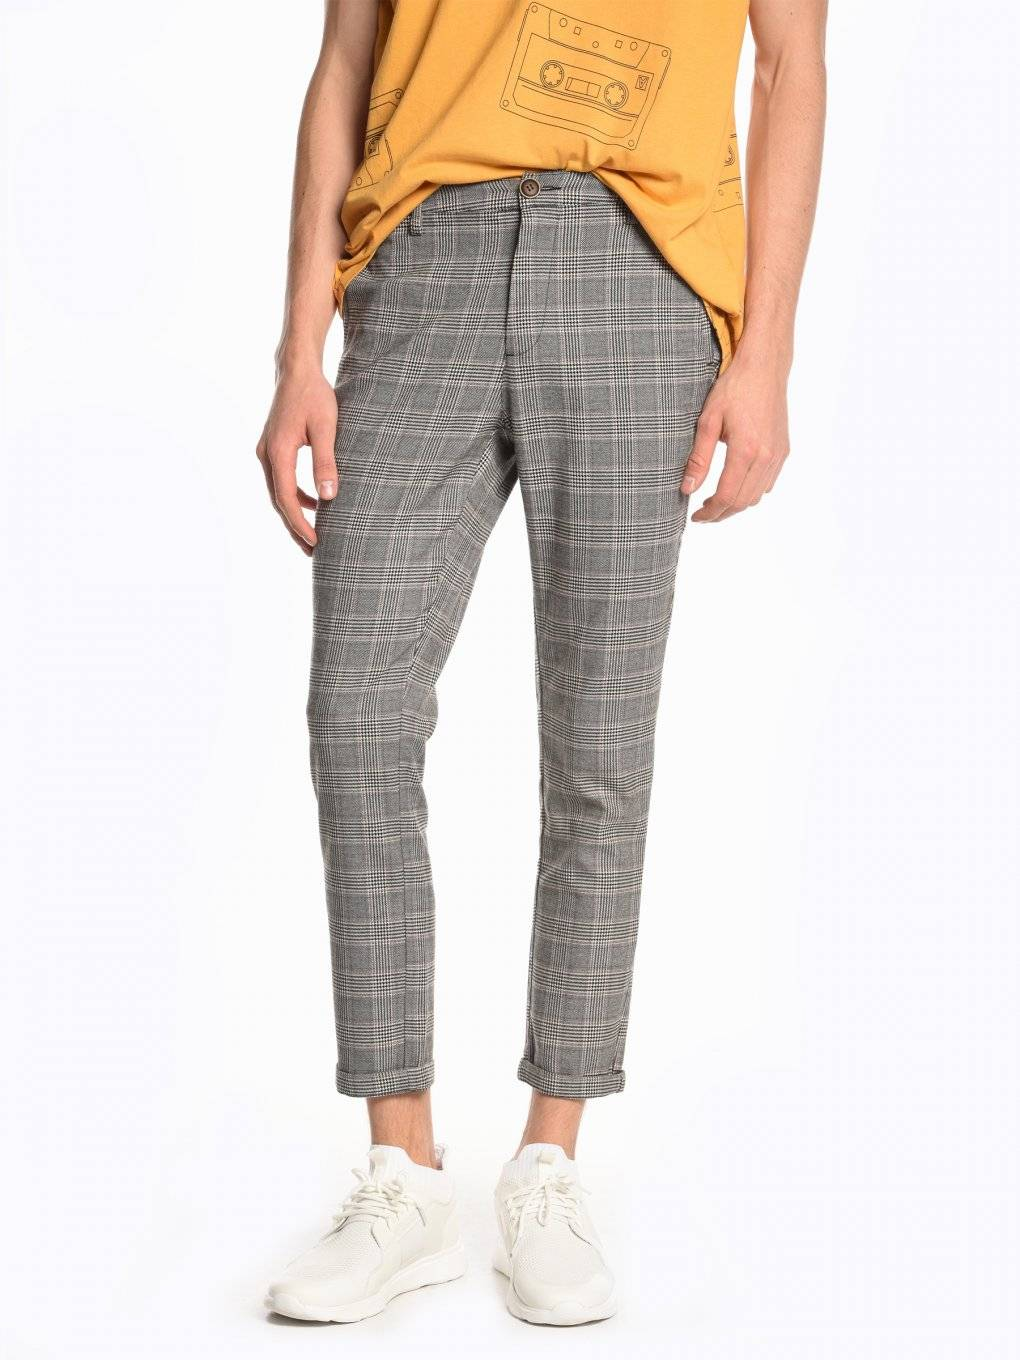 Plaid chino trousers